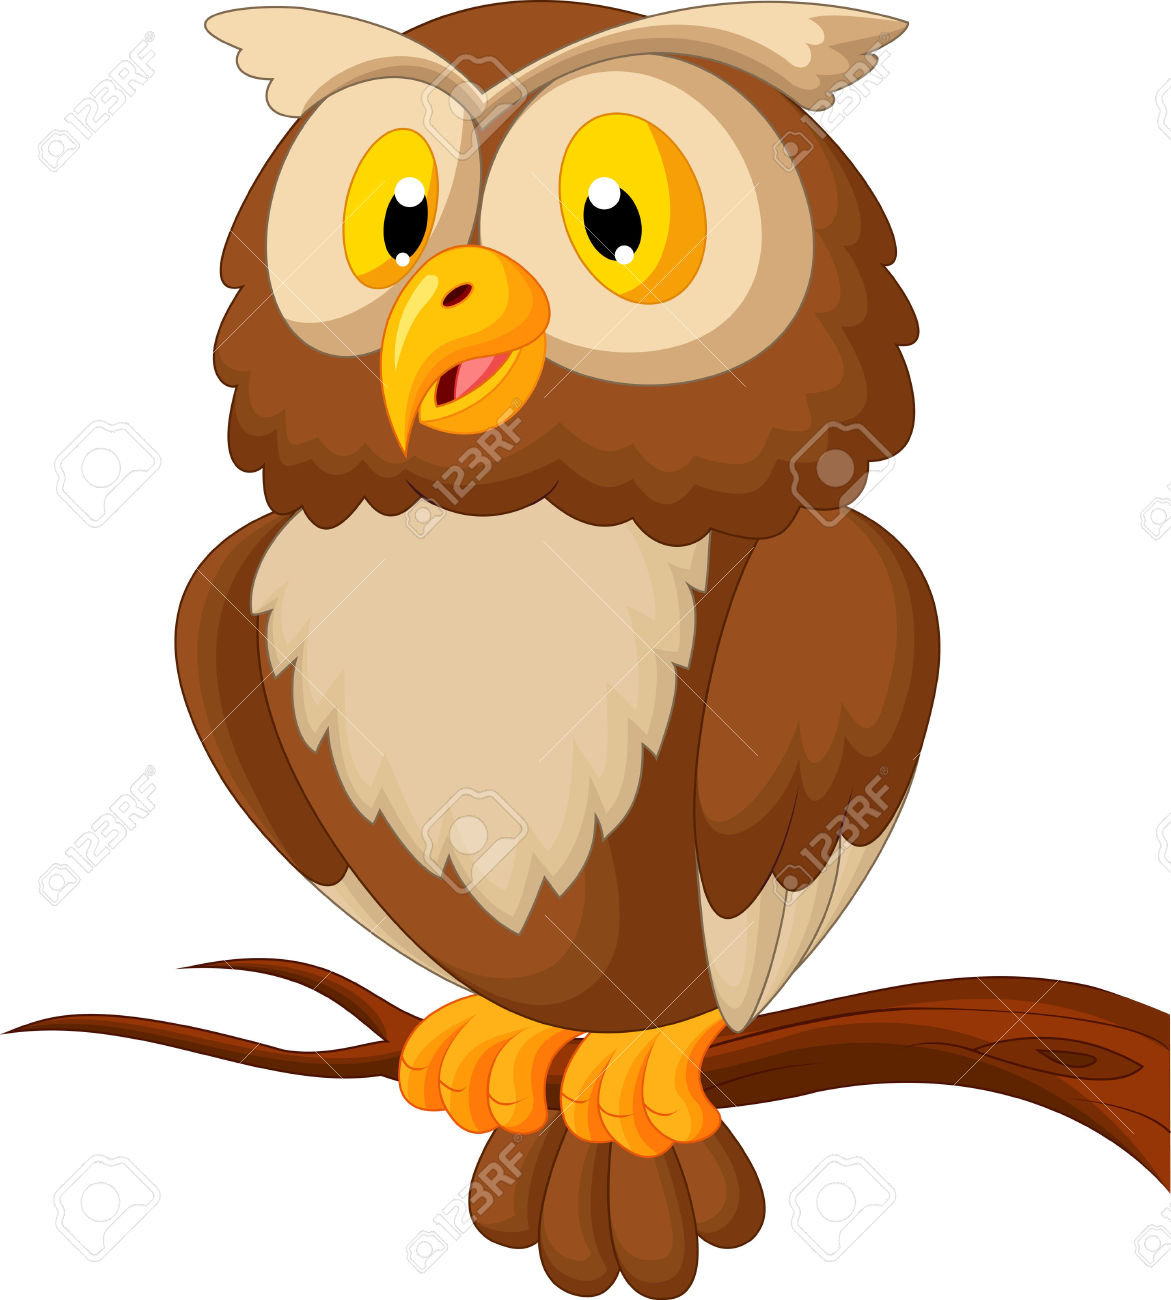 Hoot clipart, Download Hoot clipart for free 2019